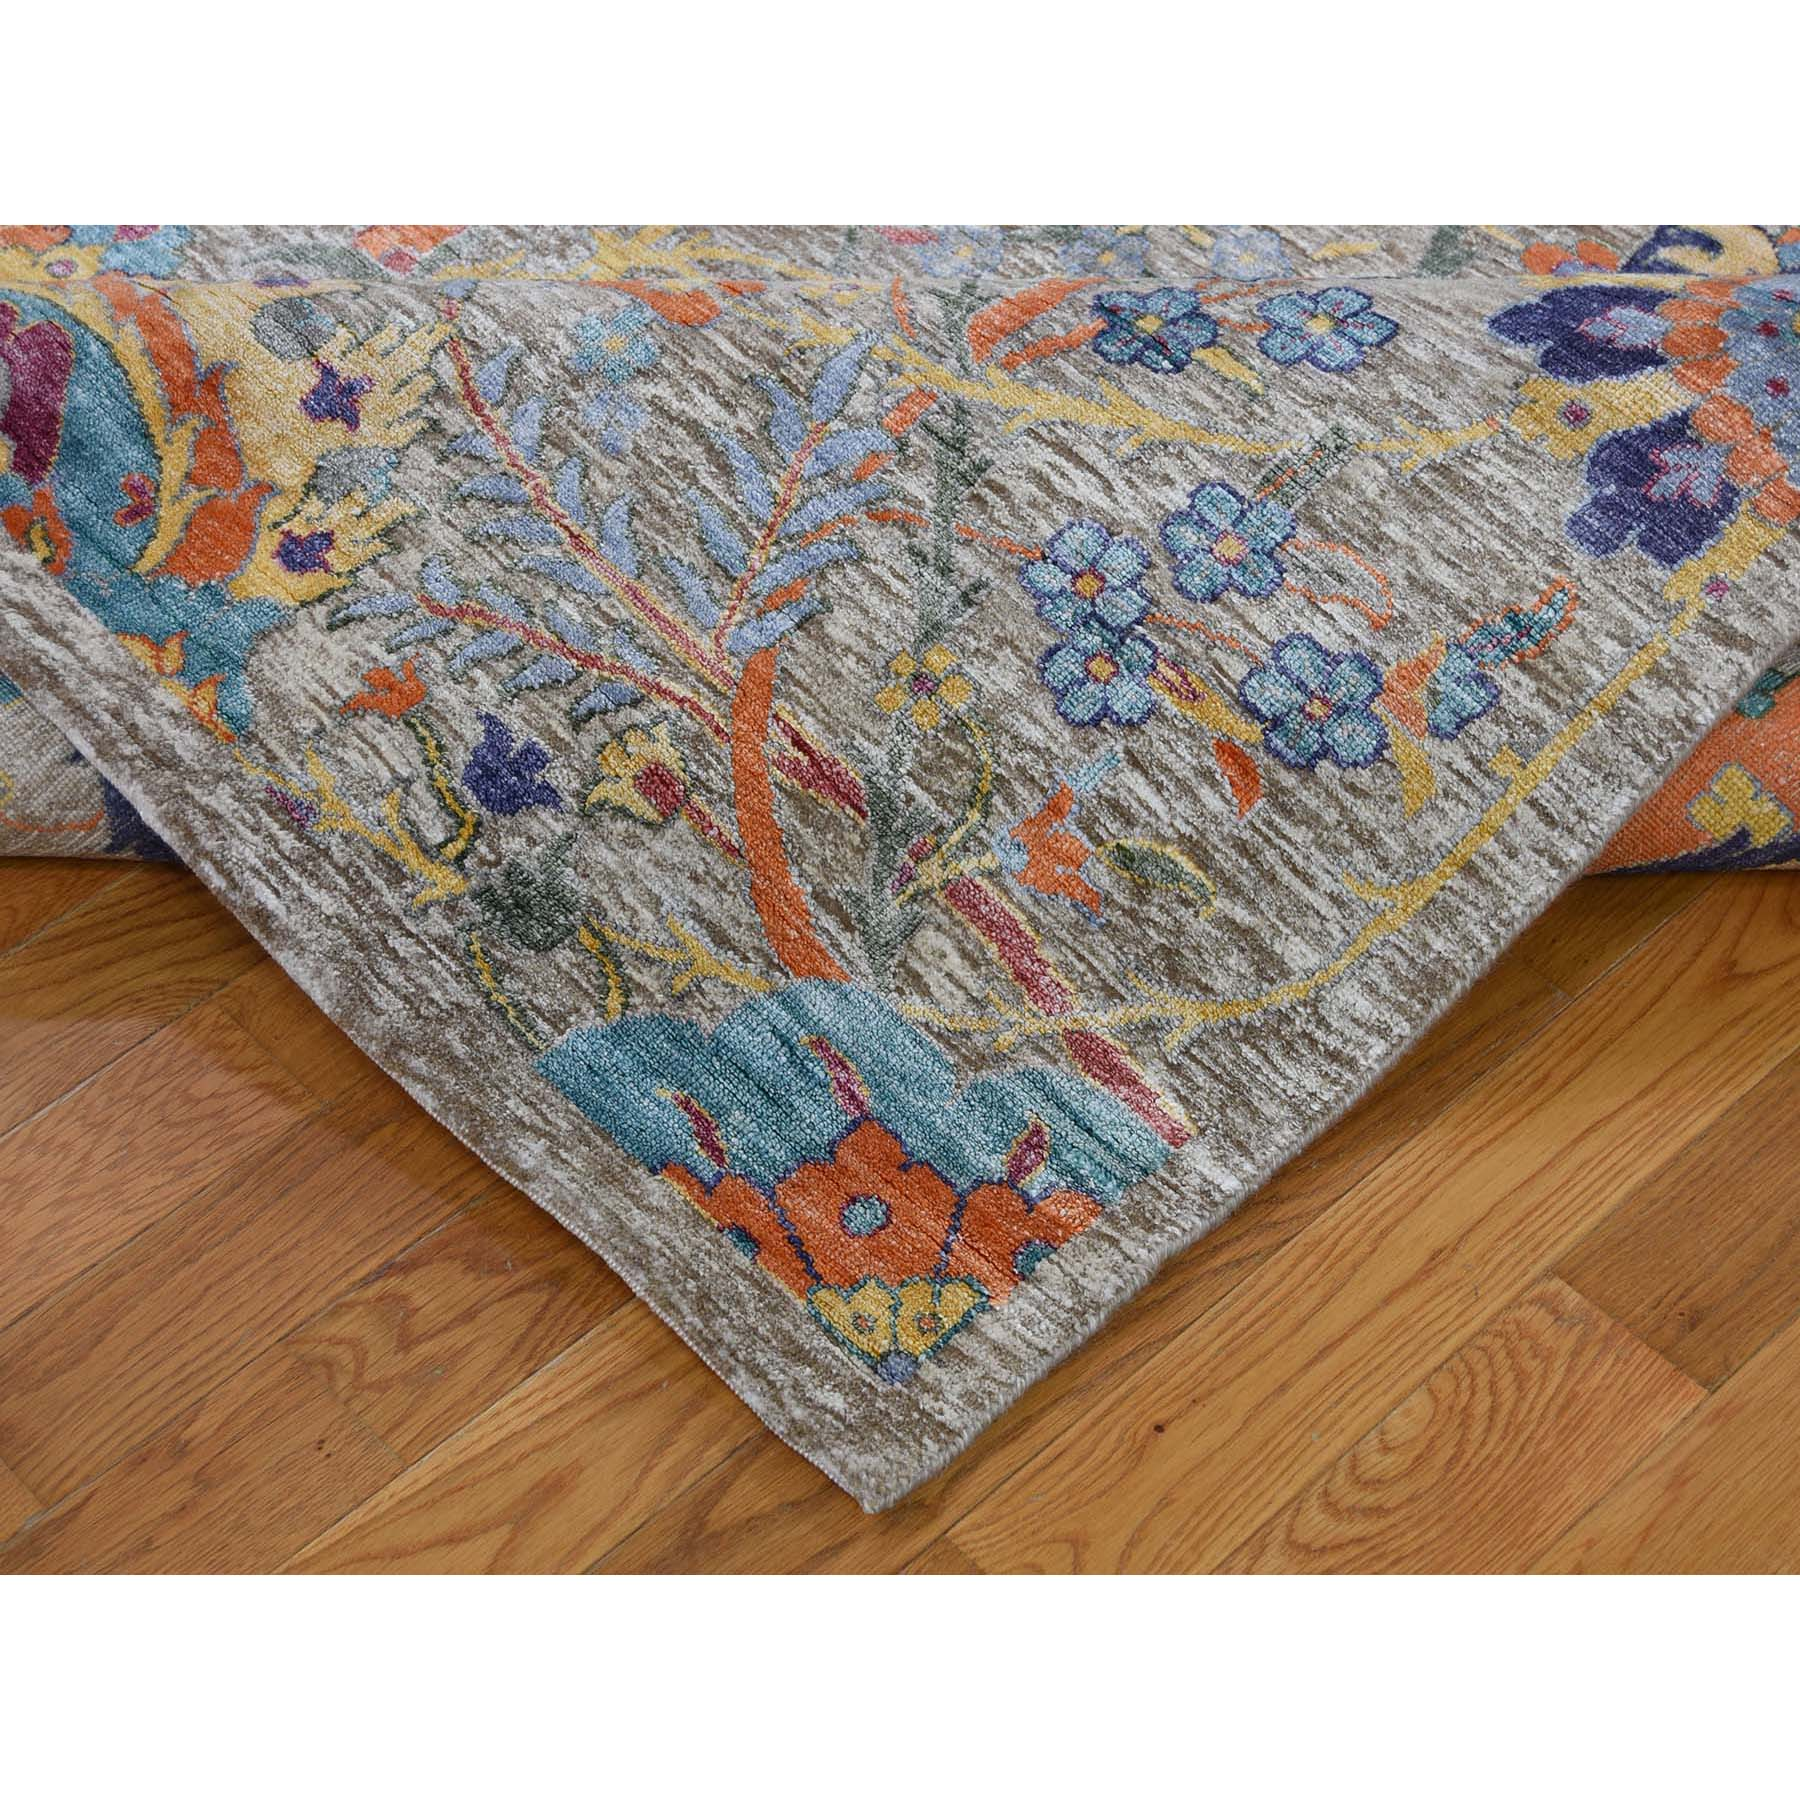 10-x14-2  Sickle Leaf Design Silk With Oxidized Wool Hand-Knotted Oriental Rug